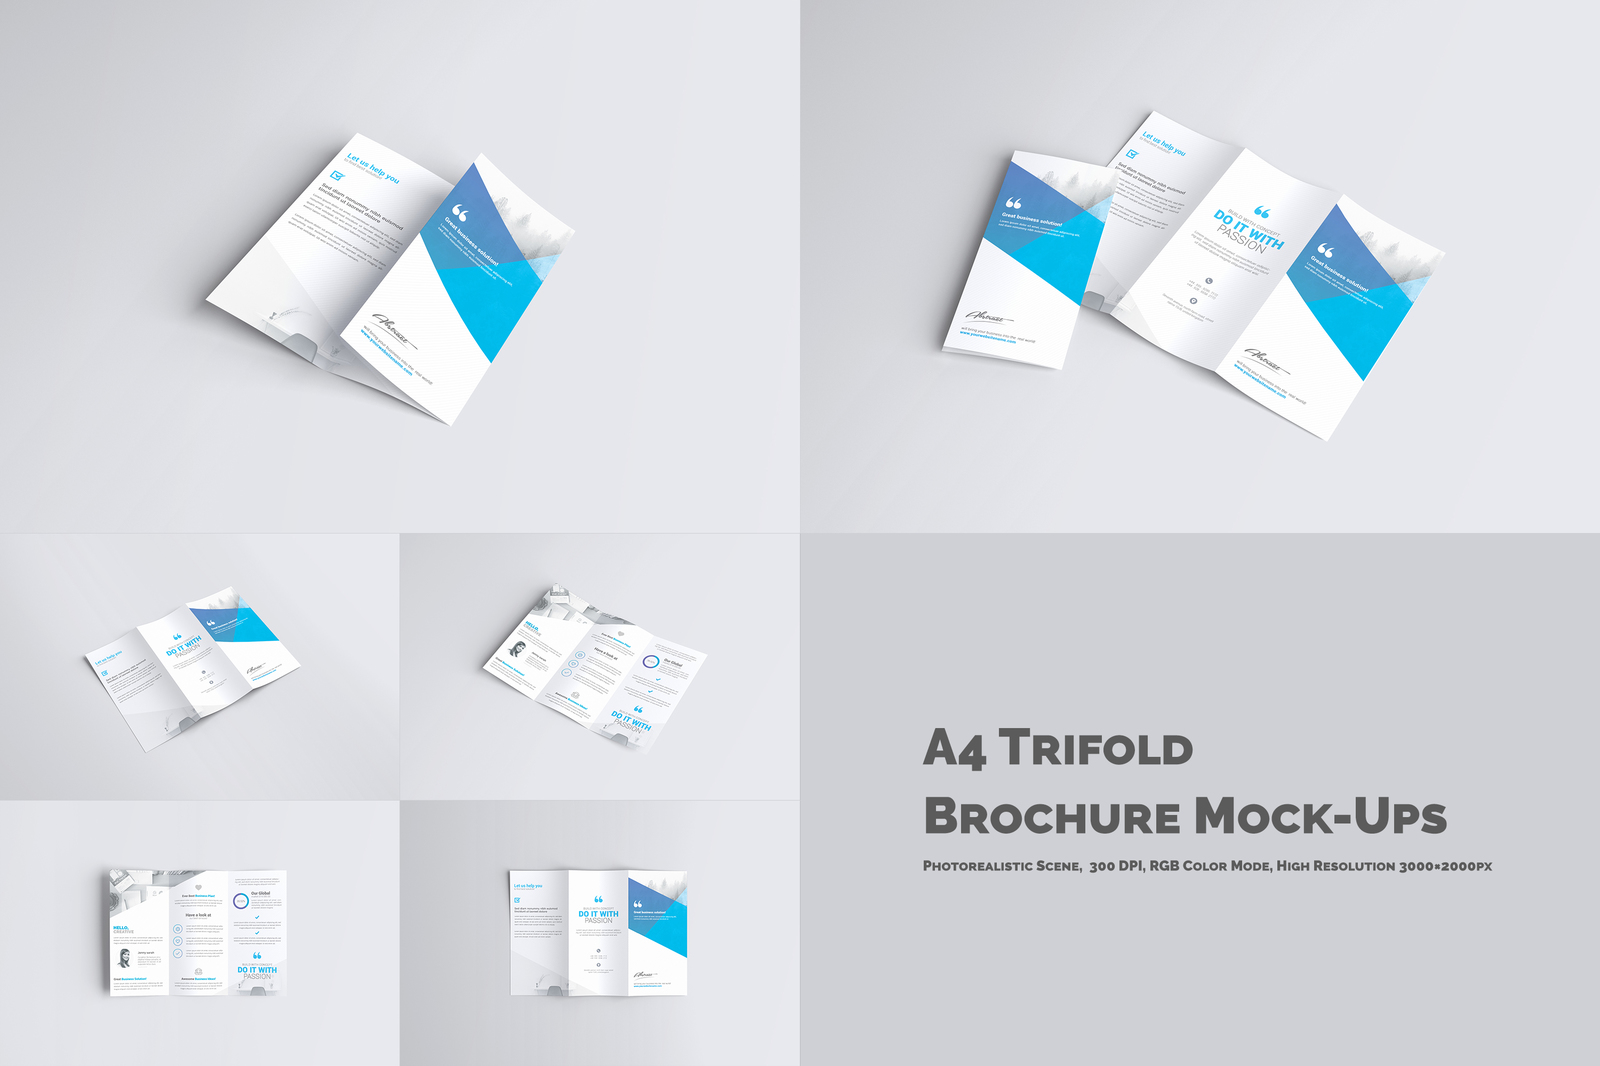 A4 Trifold Brochure Mockup In Stationery Mockups On Yellow